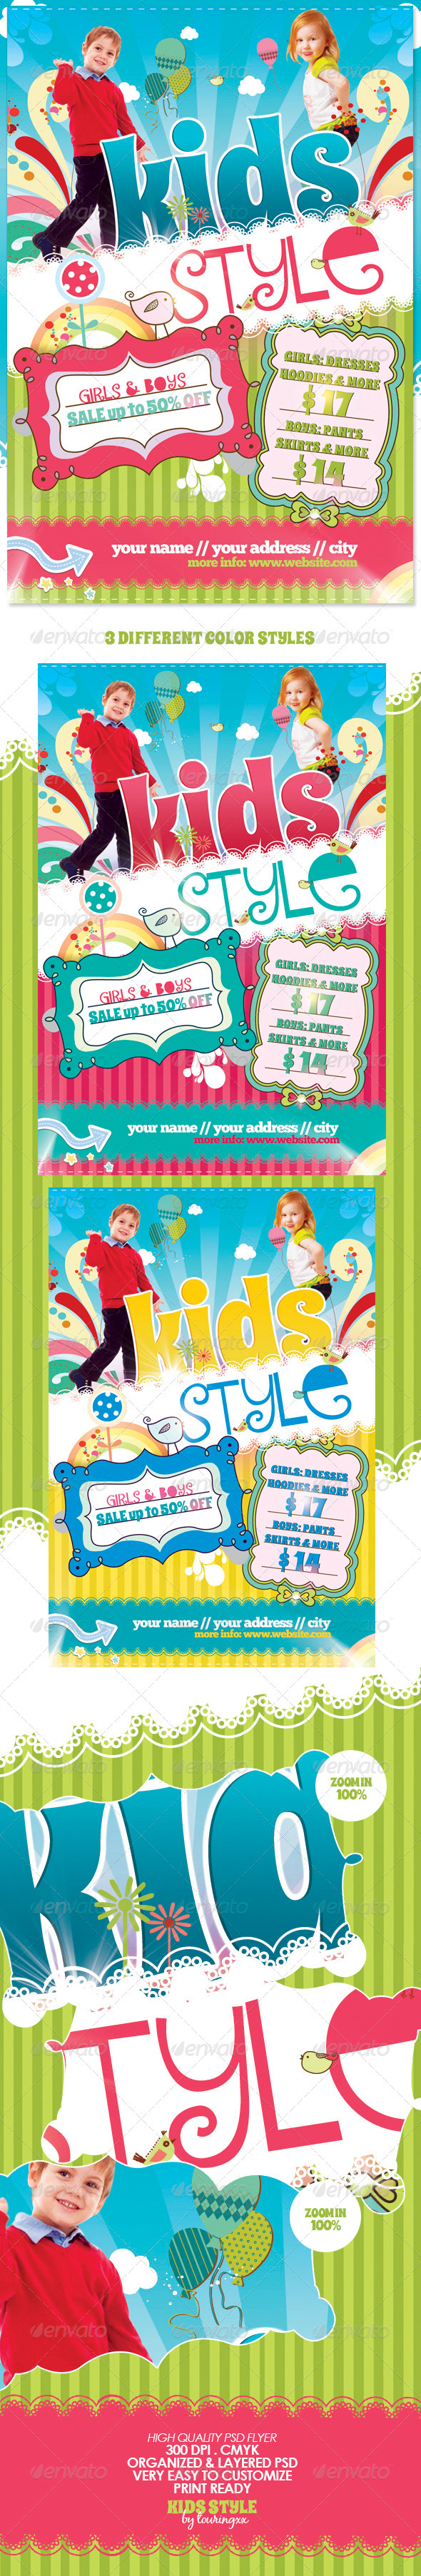 Kids Style Flyer Template Graphicriver